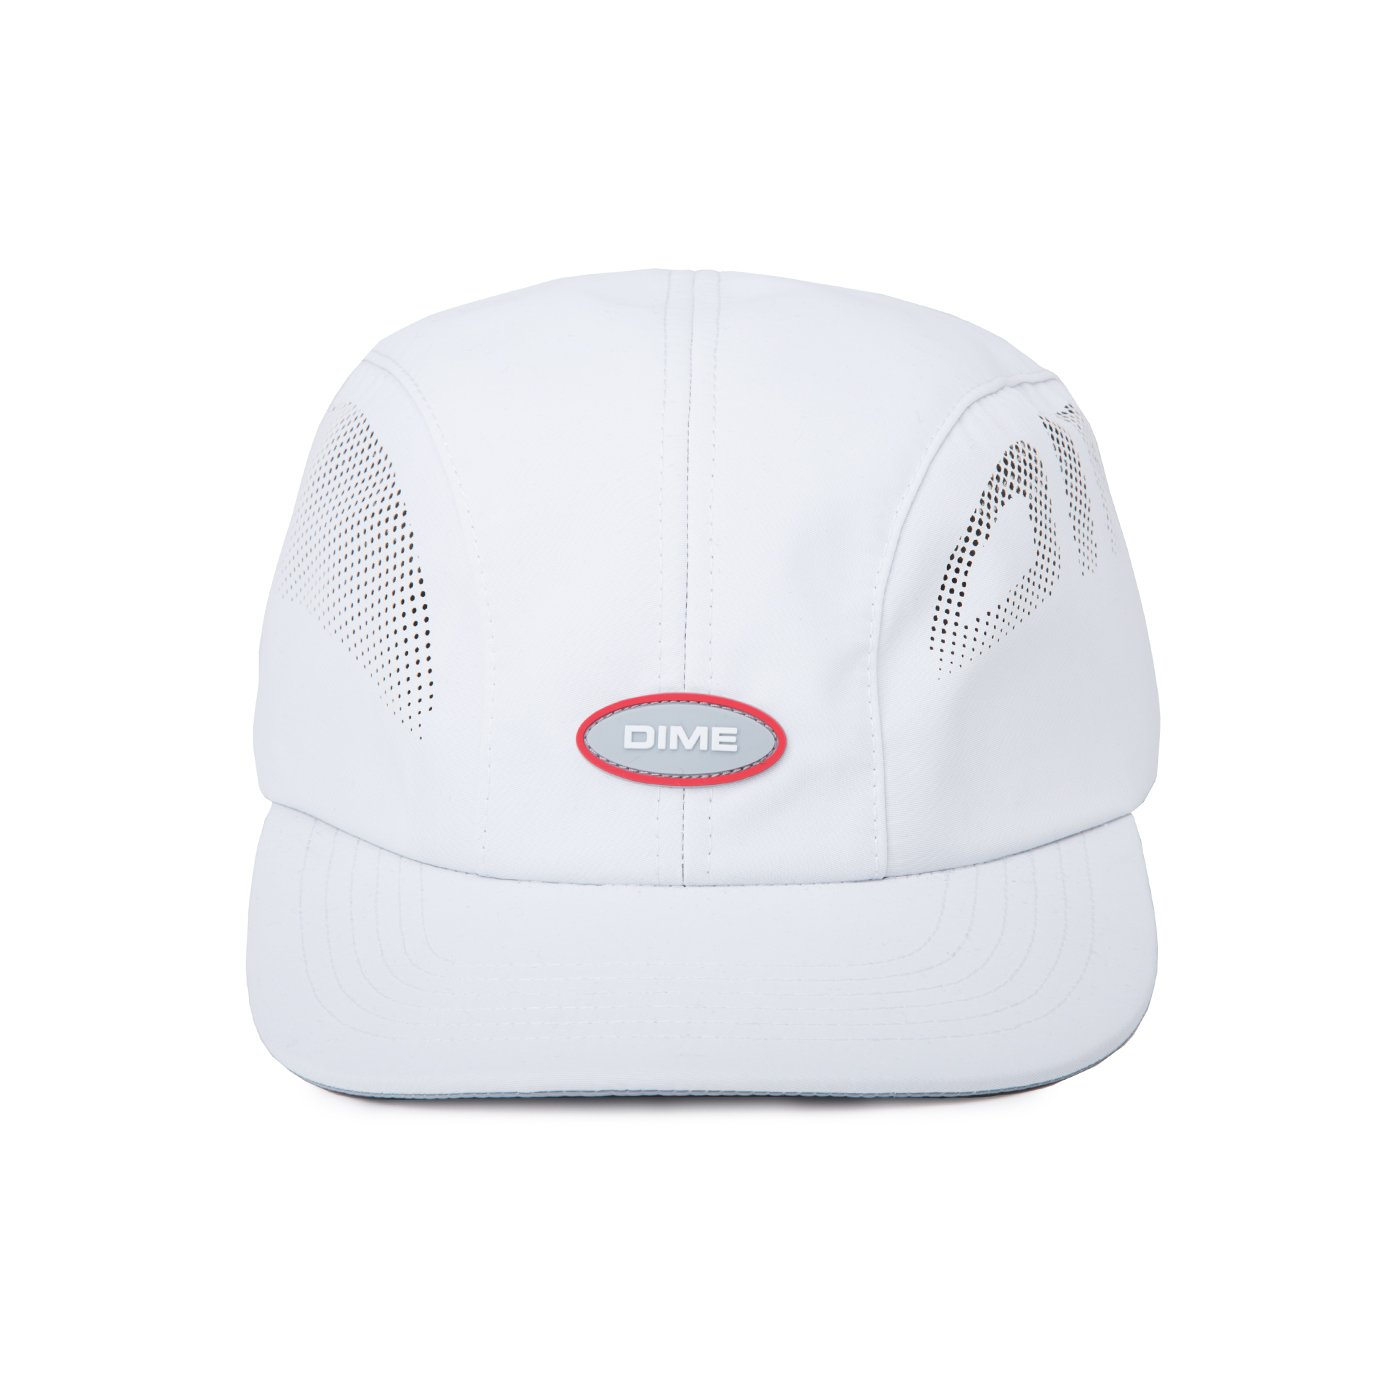 Dime Perf Cap Product Photo #2